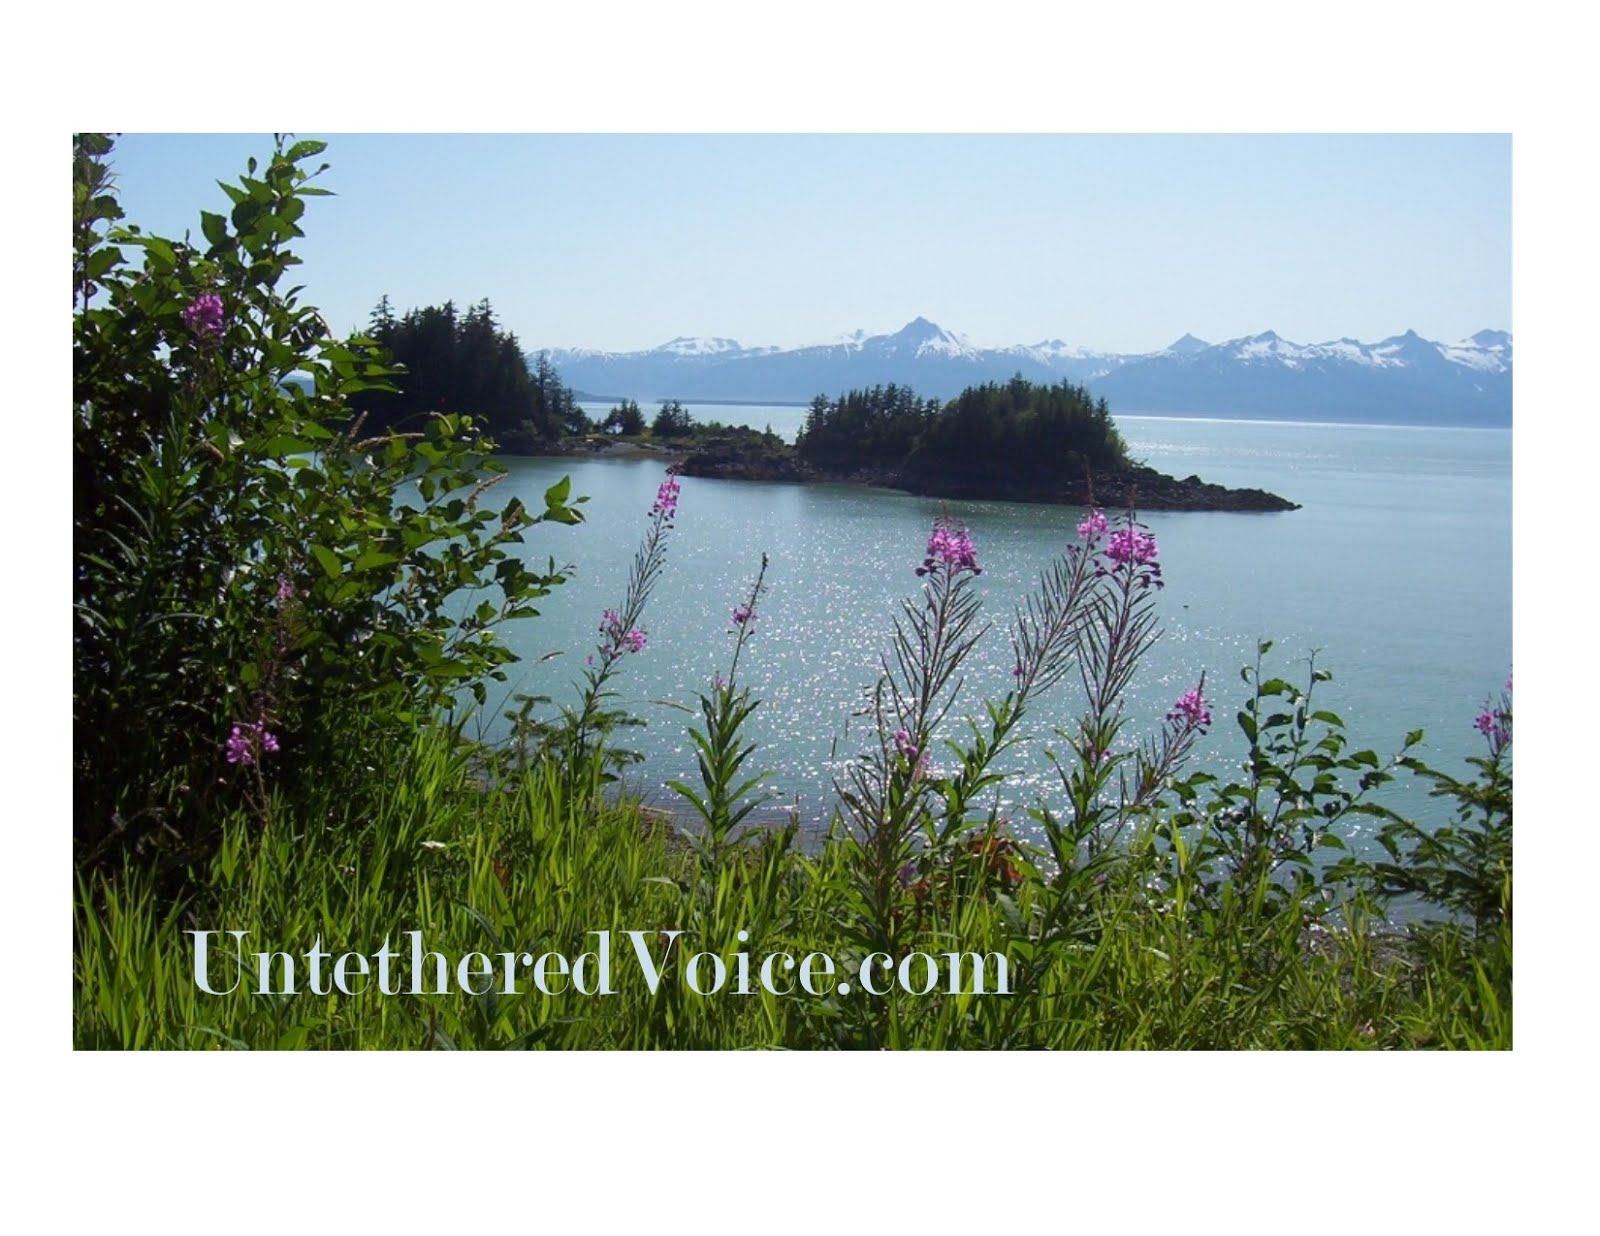 Untethered Voice